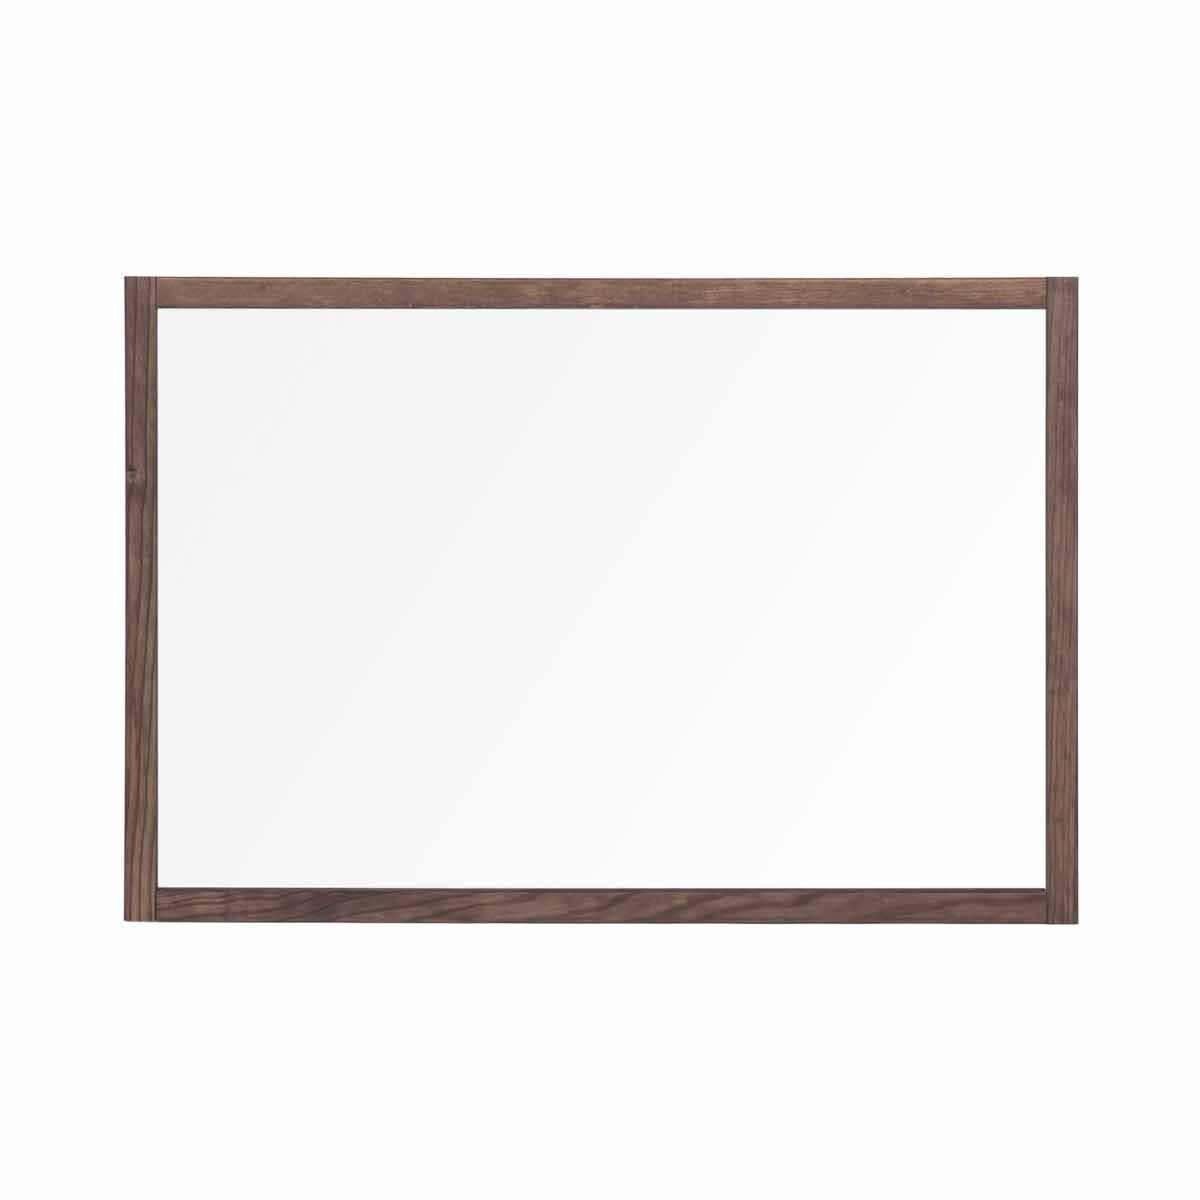 Bi-Office Protector Desktop Glass Board with Rustic Wood Frame and Clamps 120 x 90cm